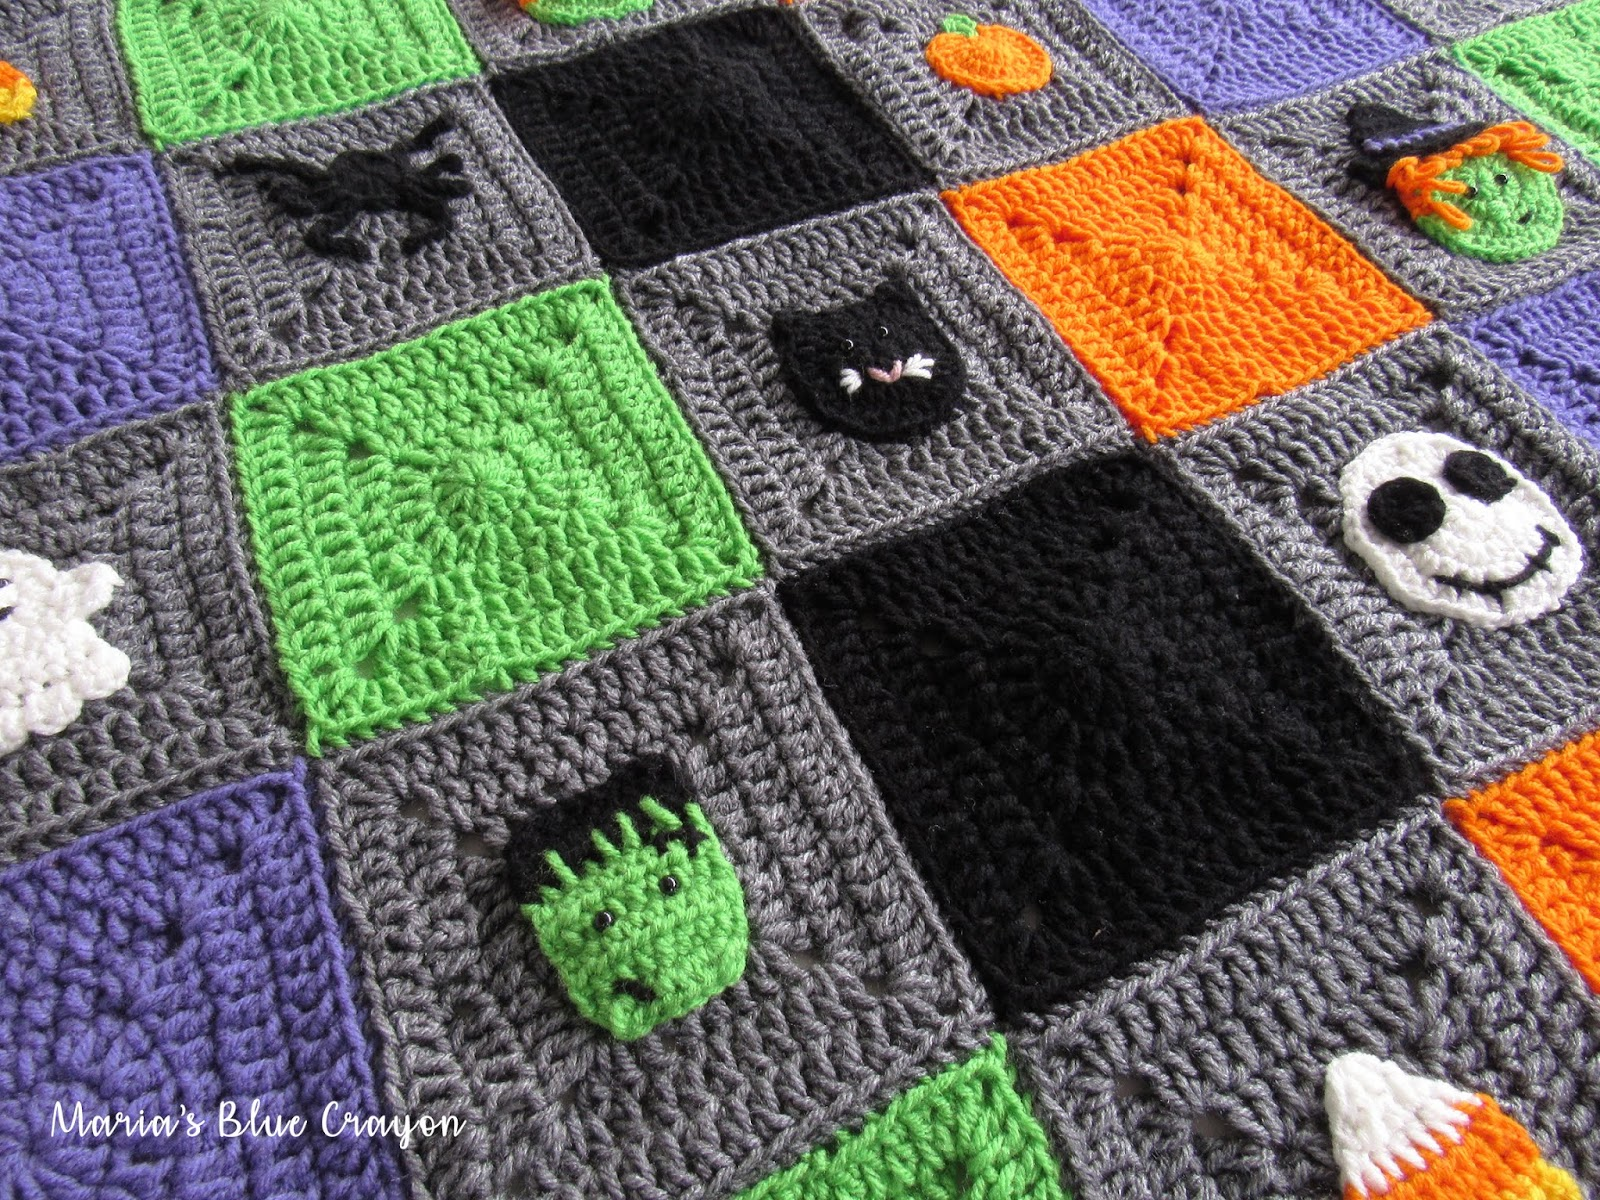 Halloween Granny Square Afghan Crochet Along - Materials